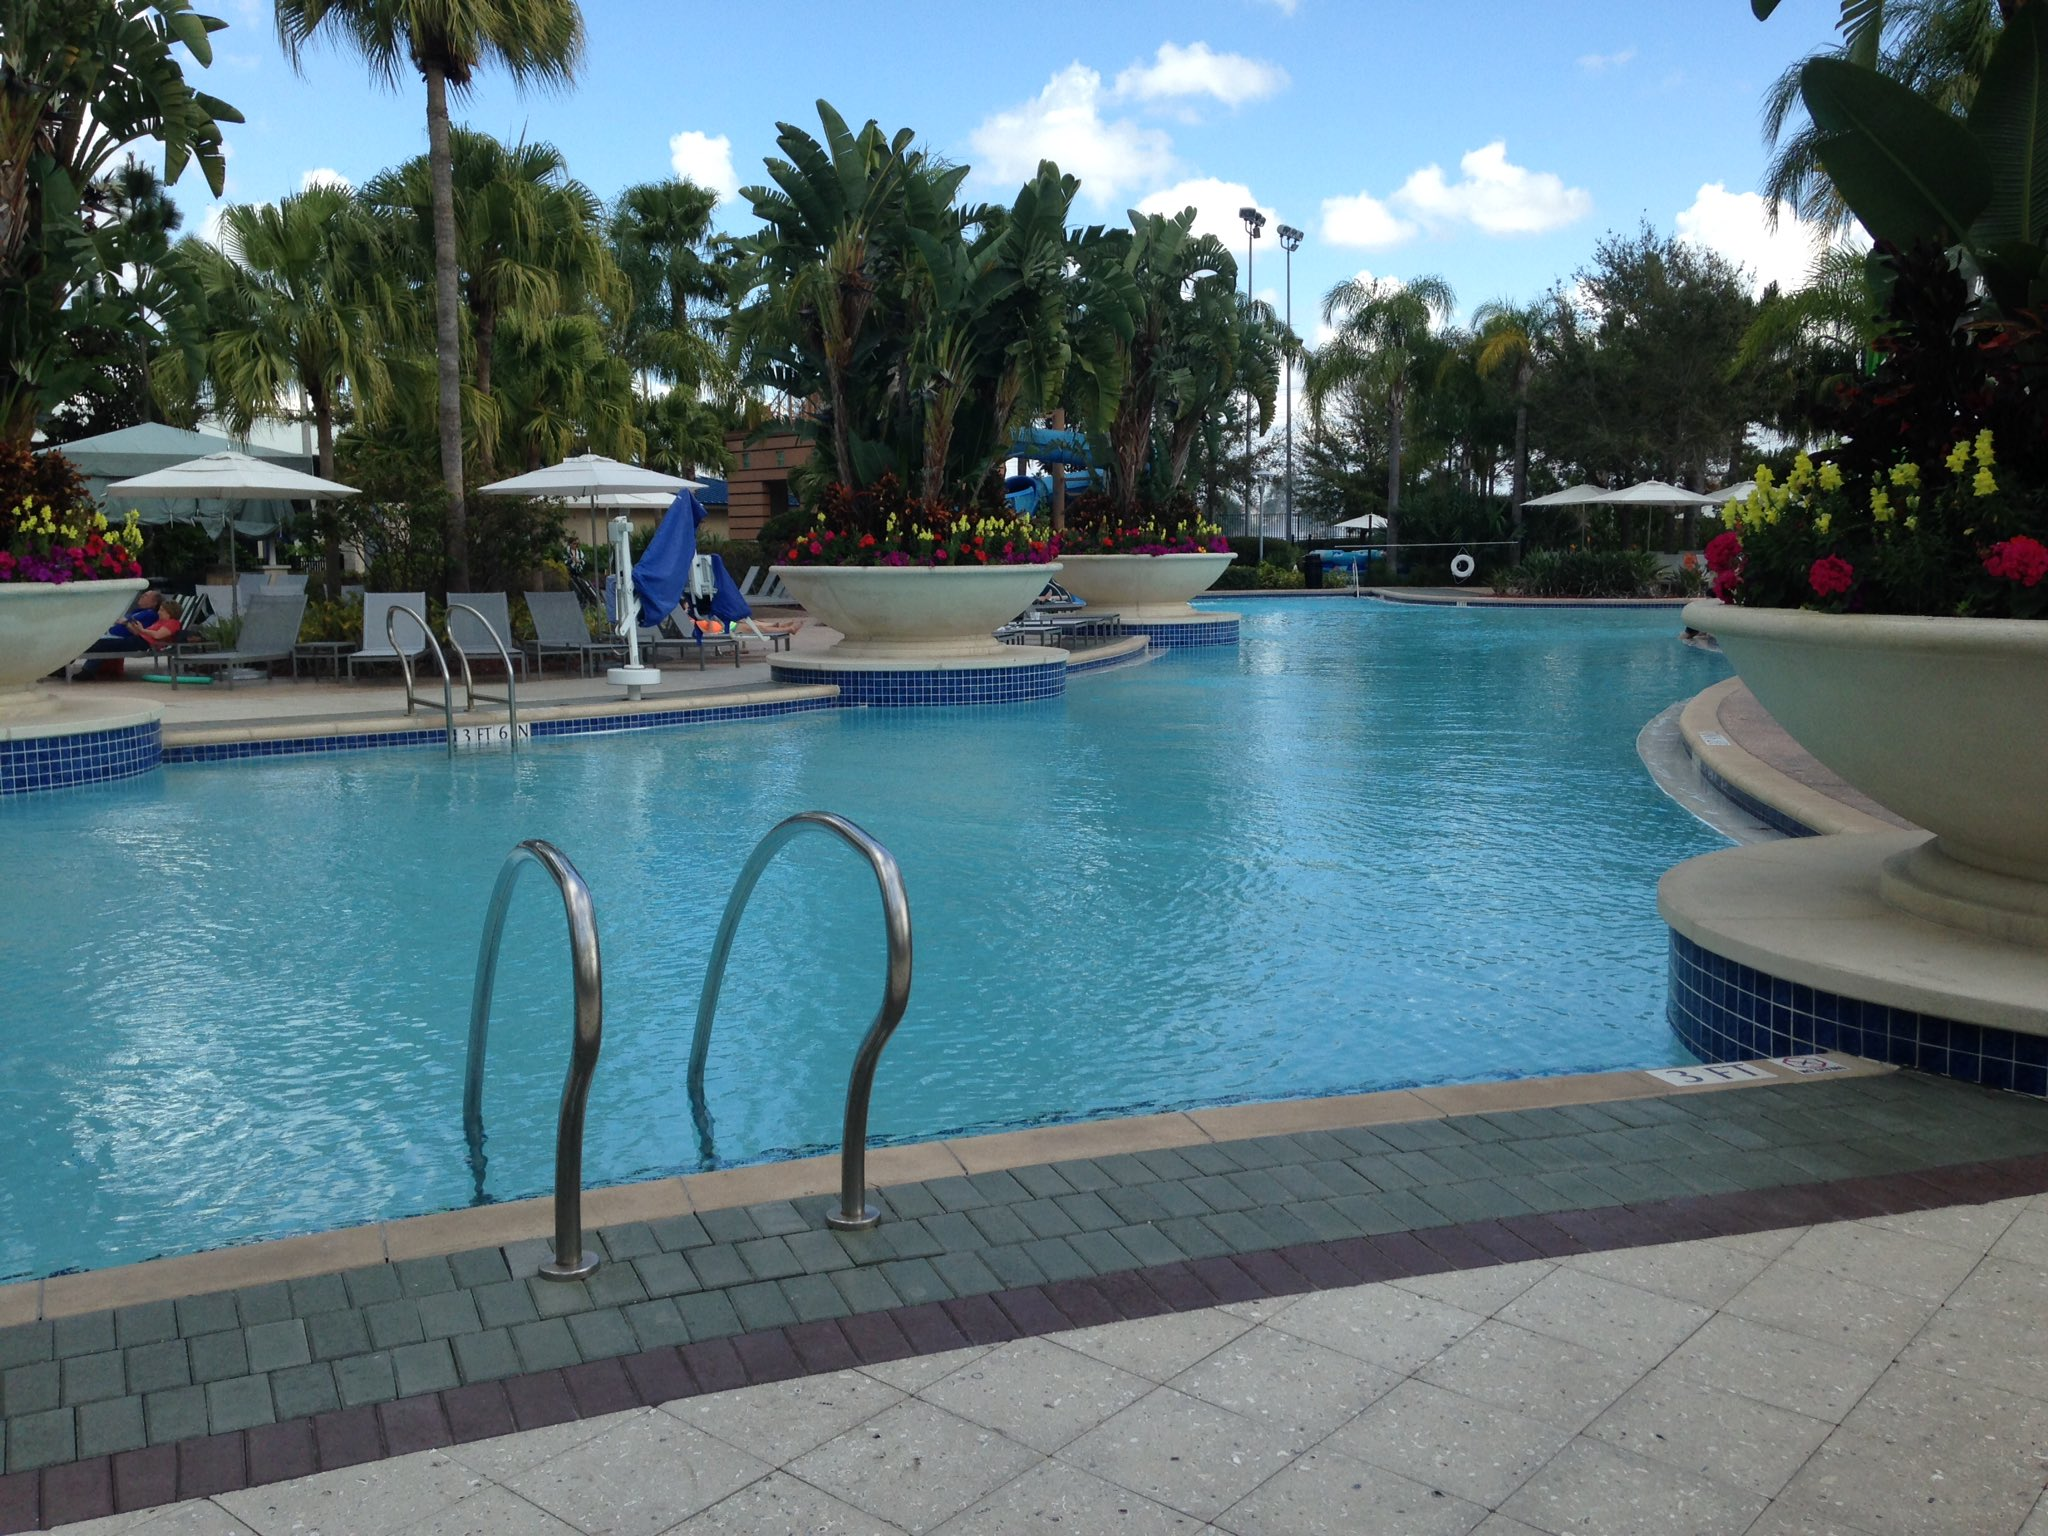 Haven't seen the sun in a couple weeks in #Chicago? Enjoy a poolside lunch while your room gets ready! #TheNAFEMShow @Hilton_Orlando https://t.co/HwVEodNvVF